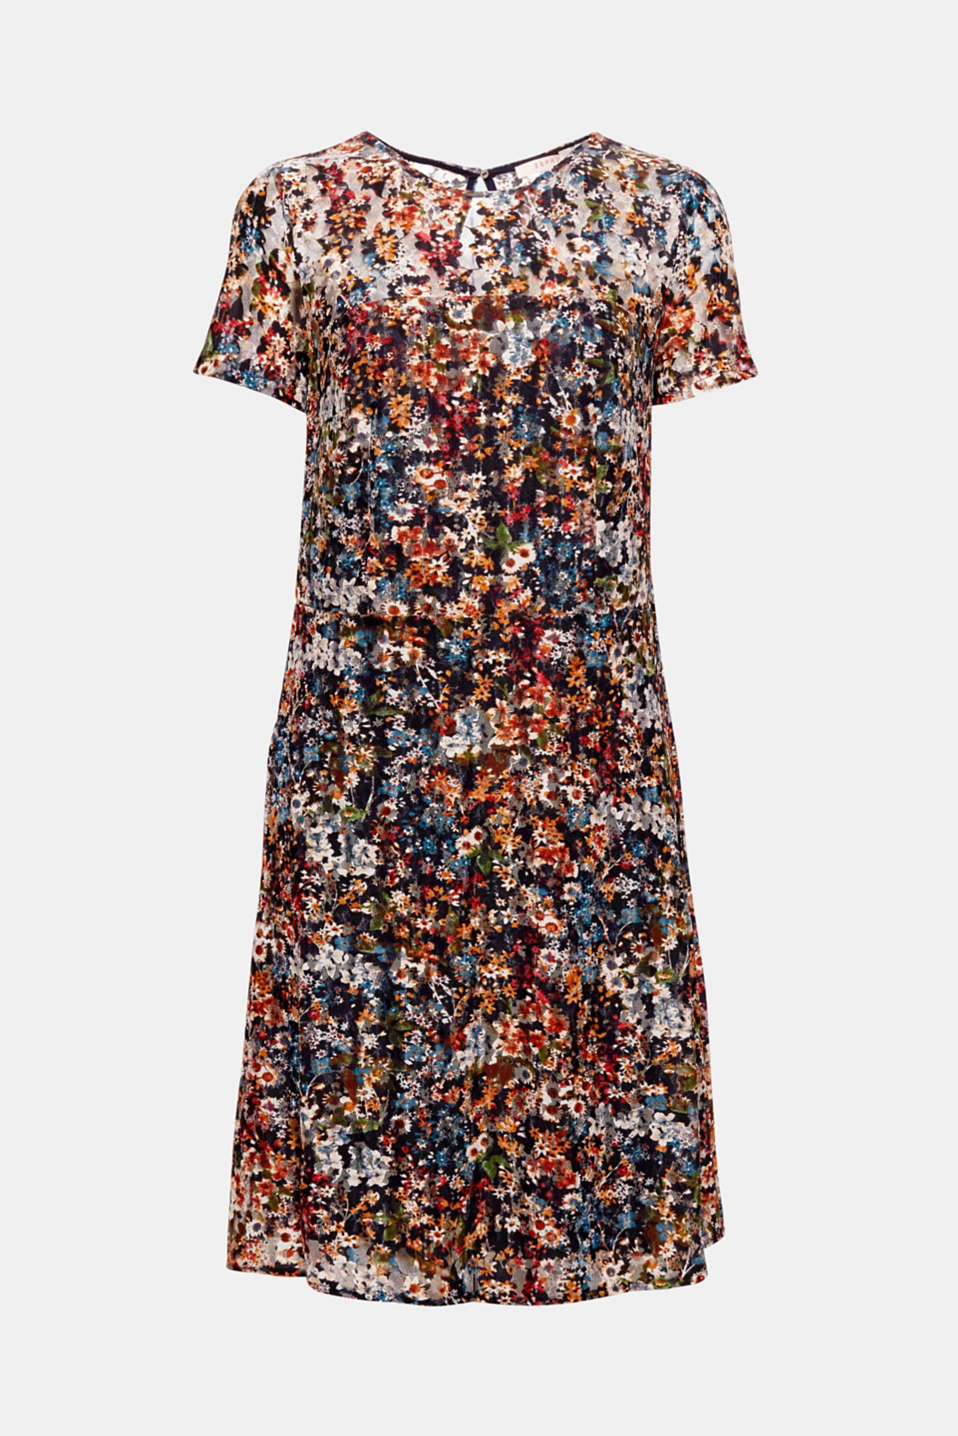 The bright floral print on the sheer, slightly stretch mesh fabric makes this dress with opaque lining and a swirling skirt the perfect summer piece!